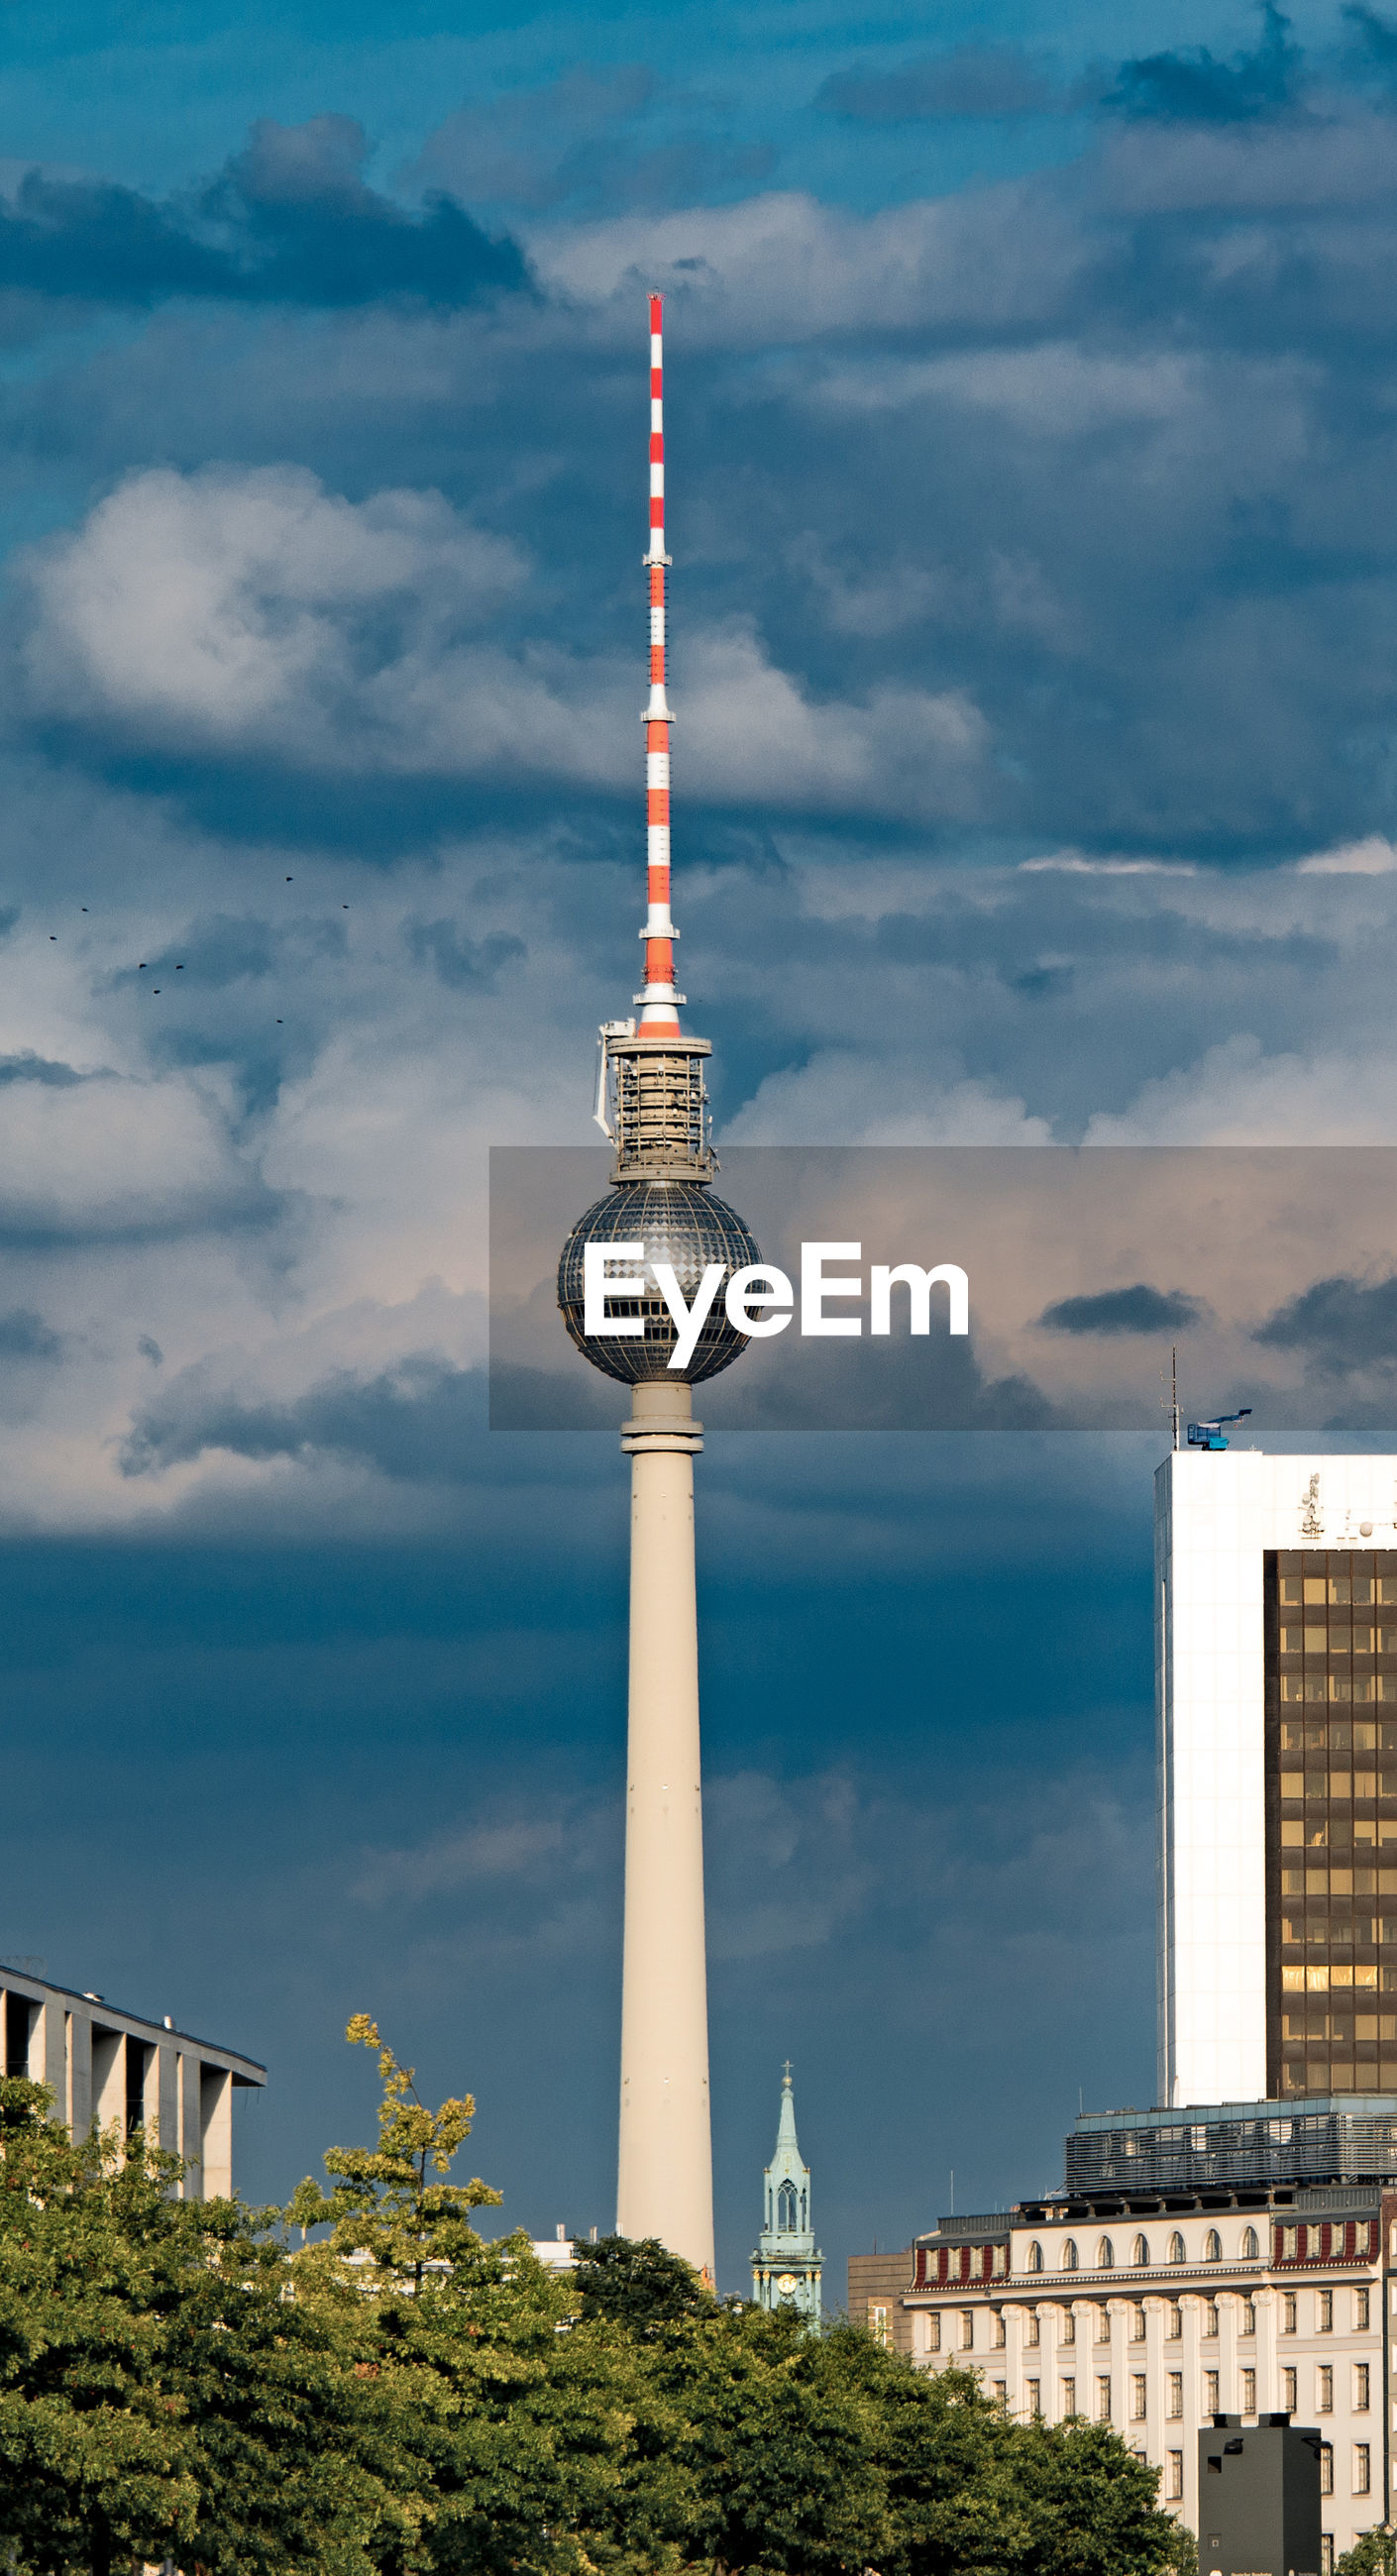 View of berlin tv tower against cloudy sky